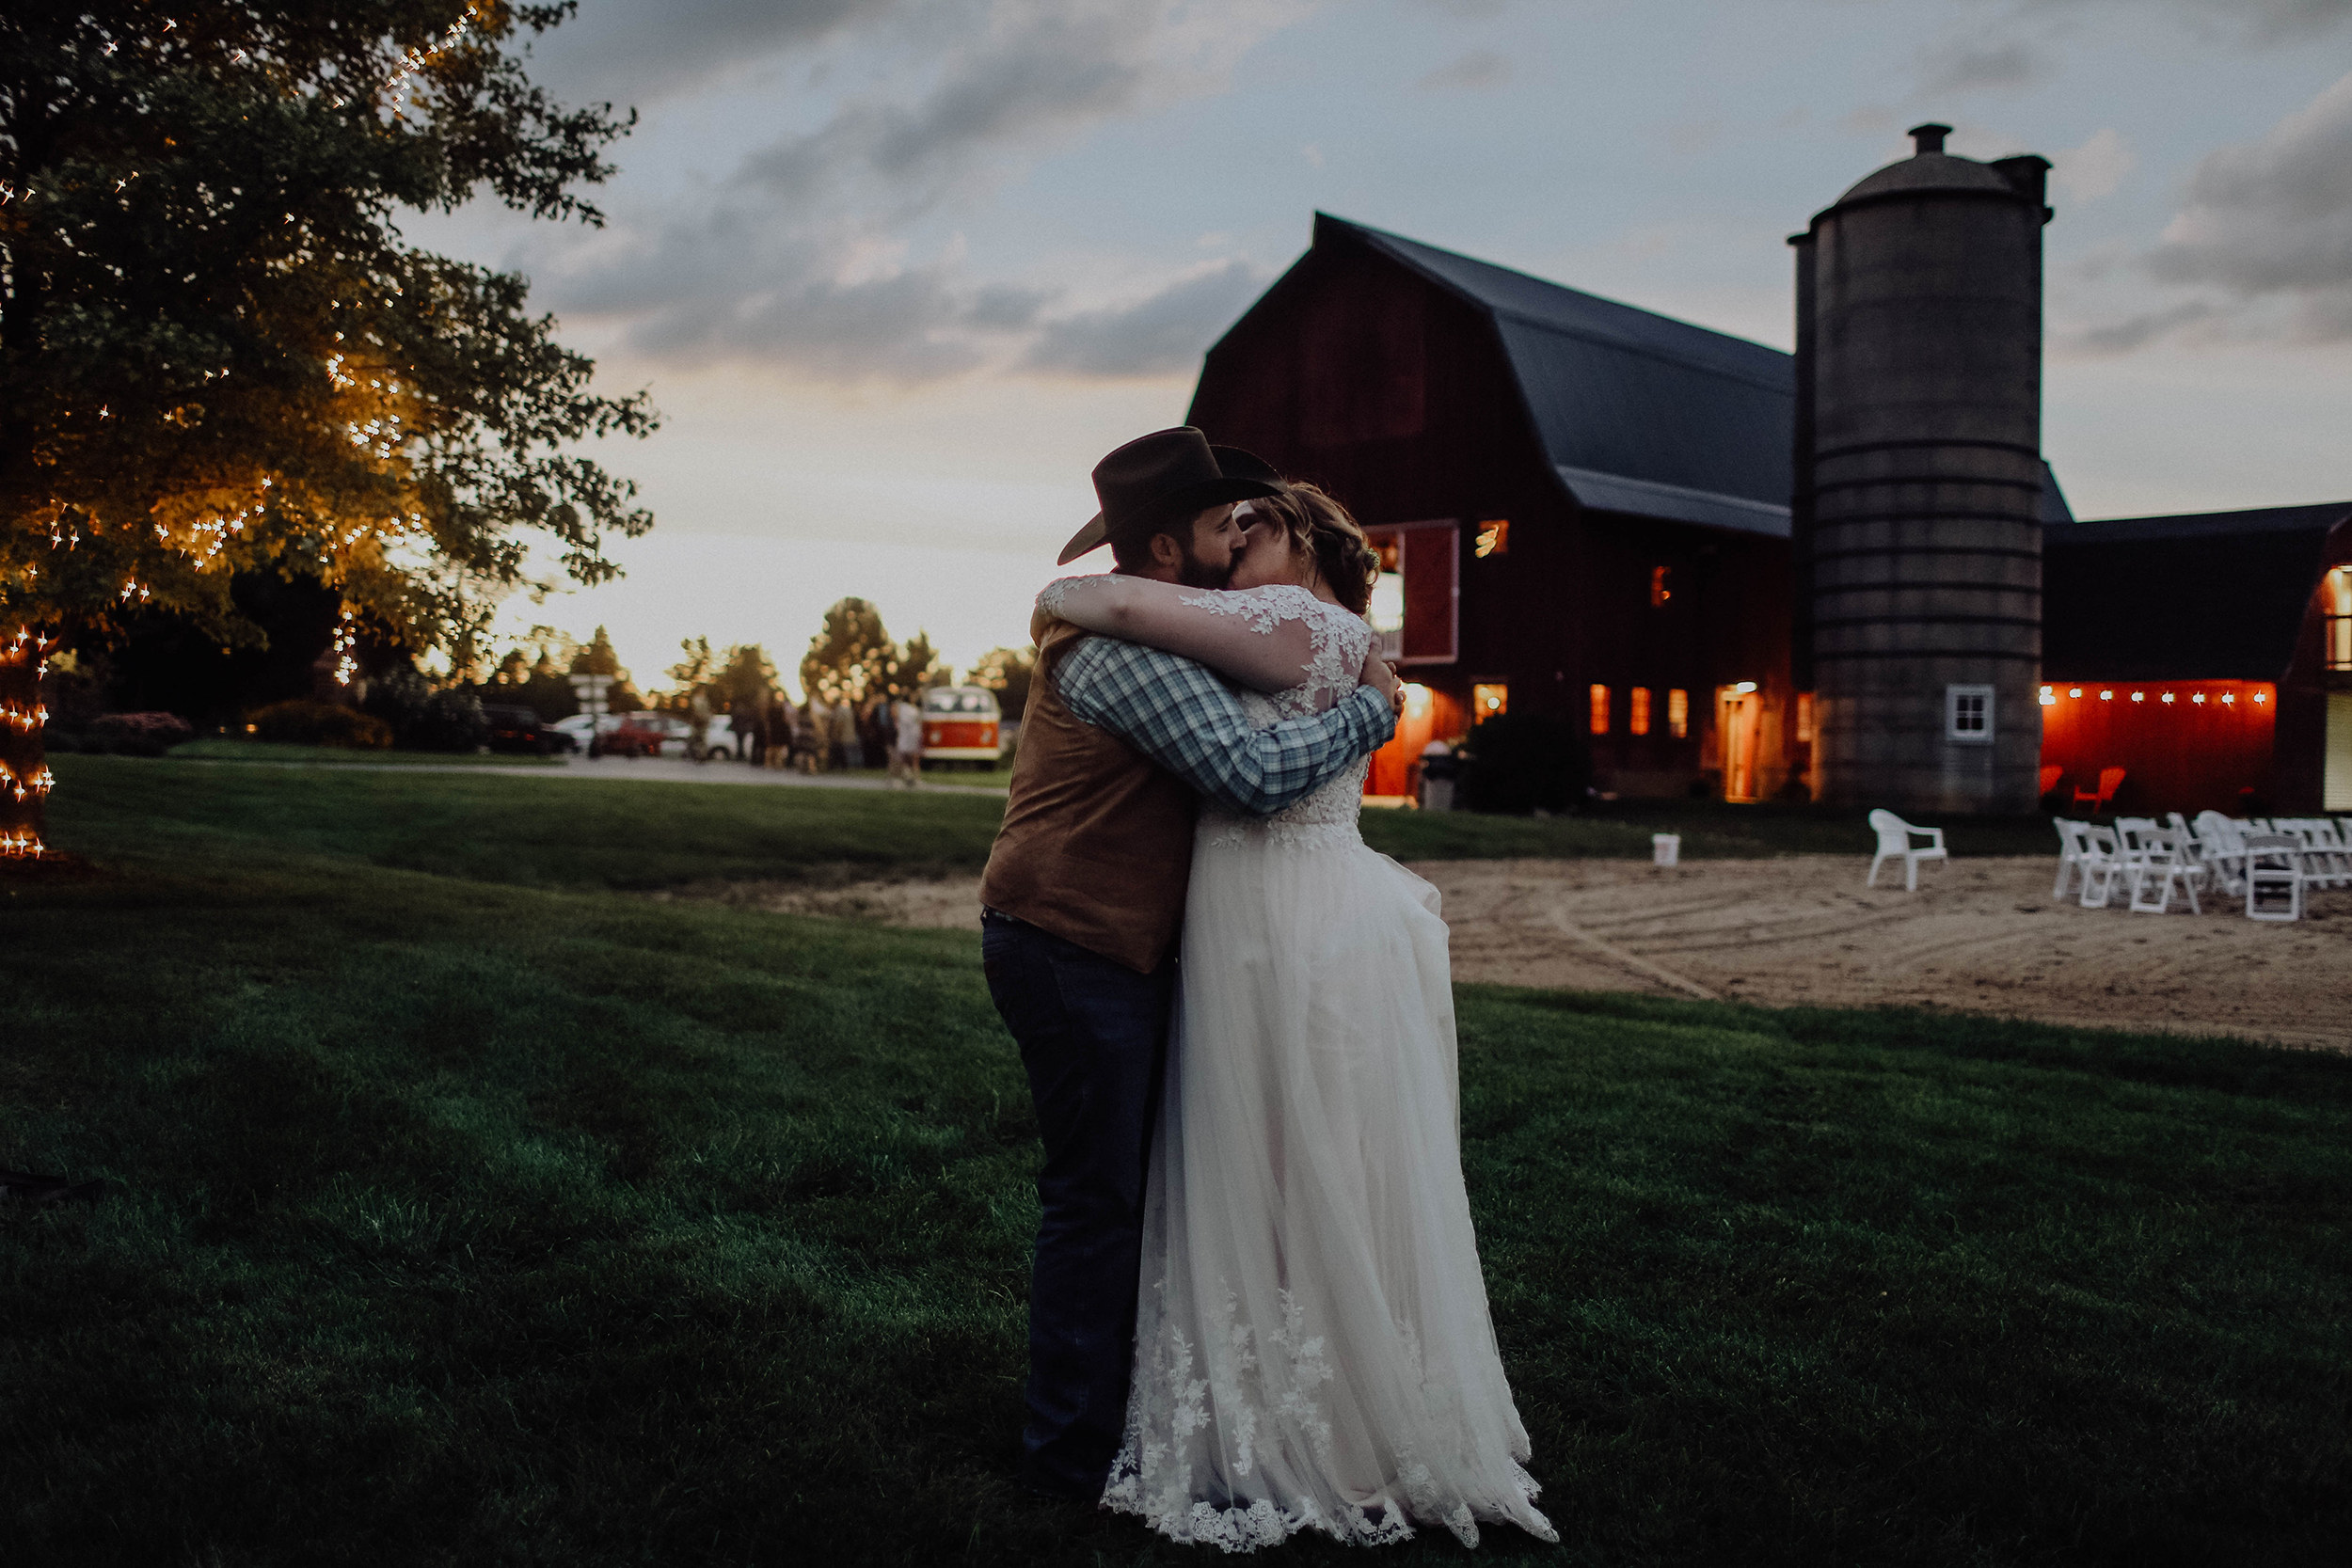 bride-groom-kiss-at-dusk-at-barn-wedding-venue.jpeg